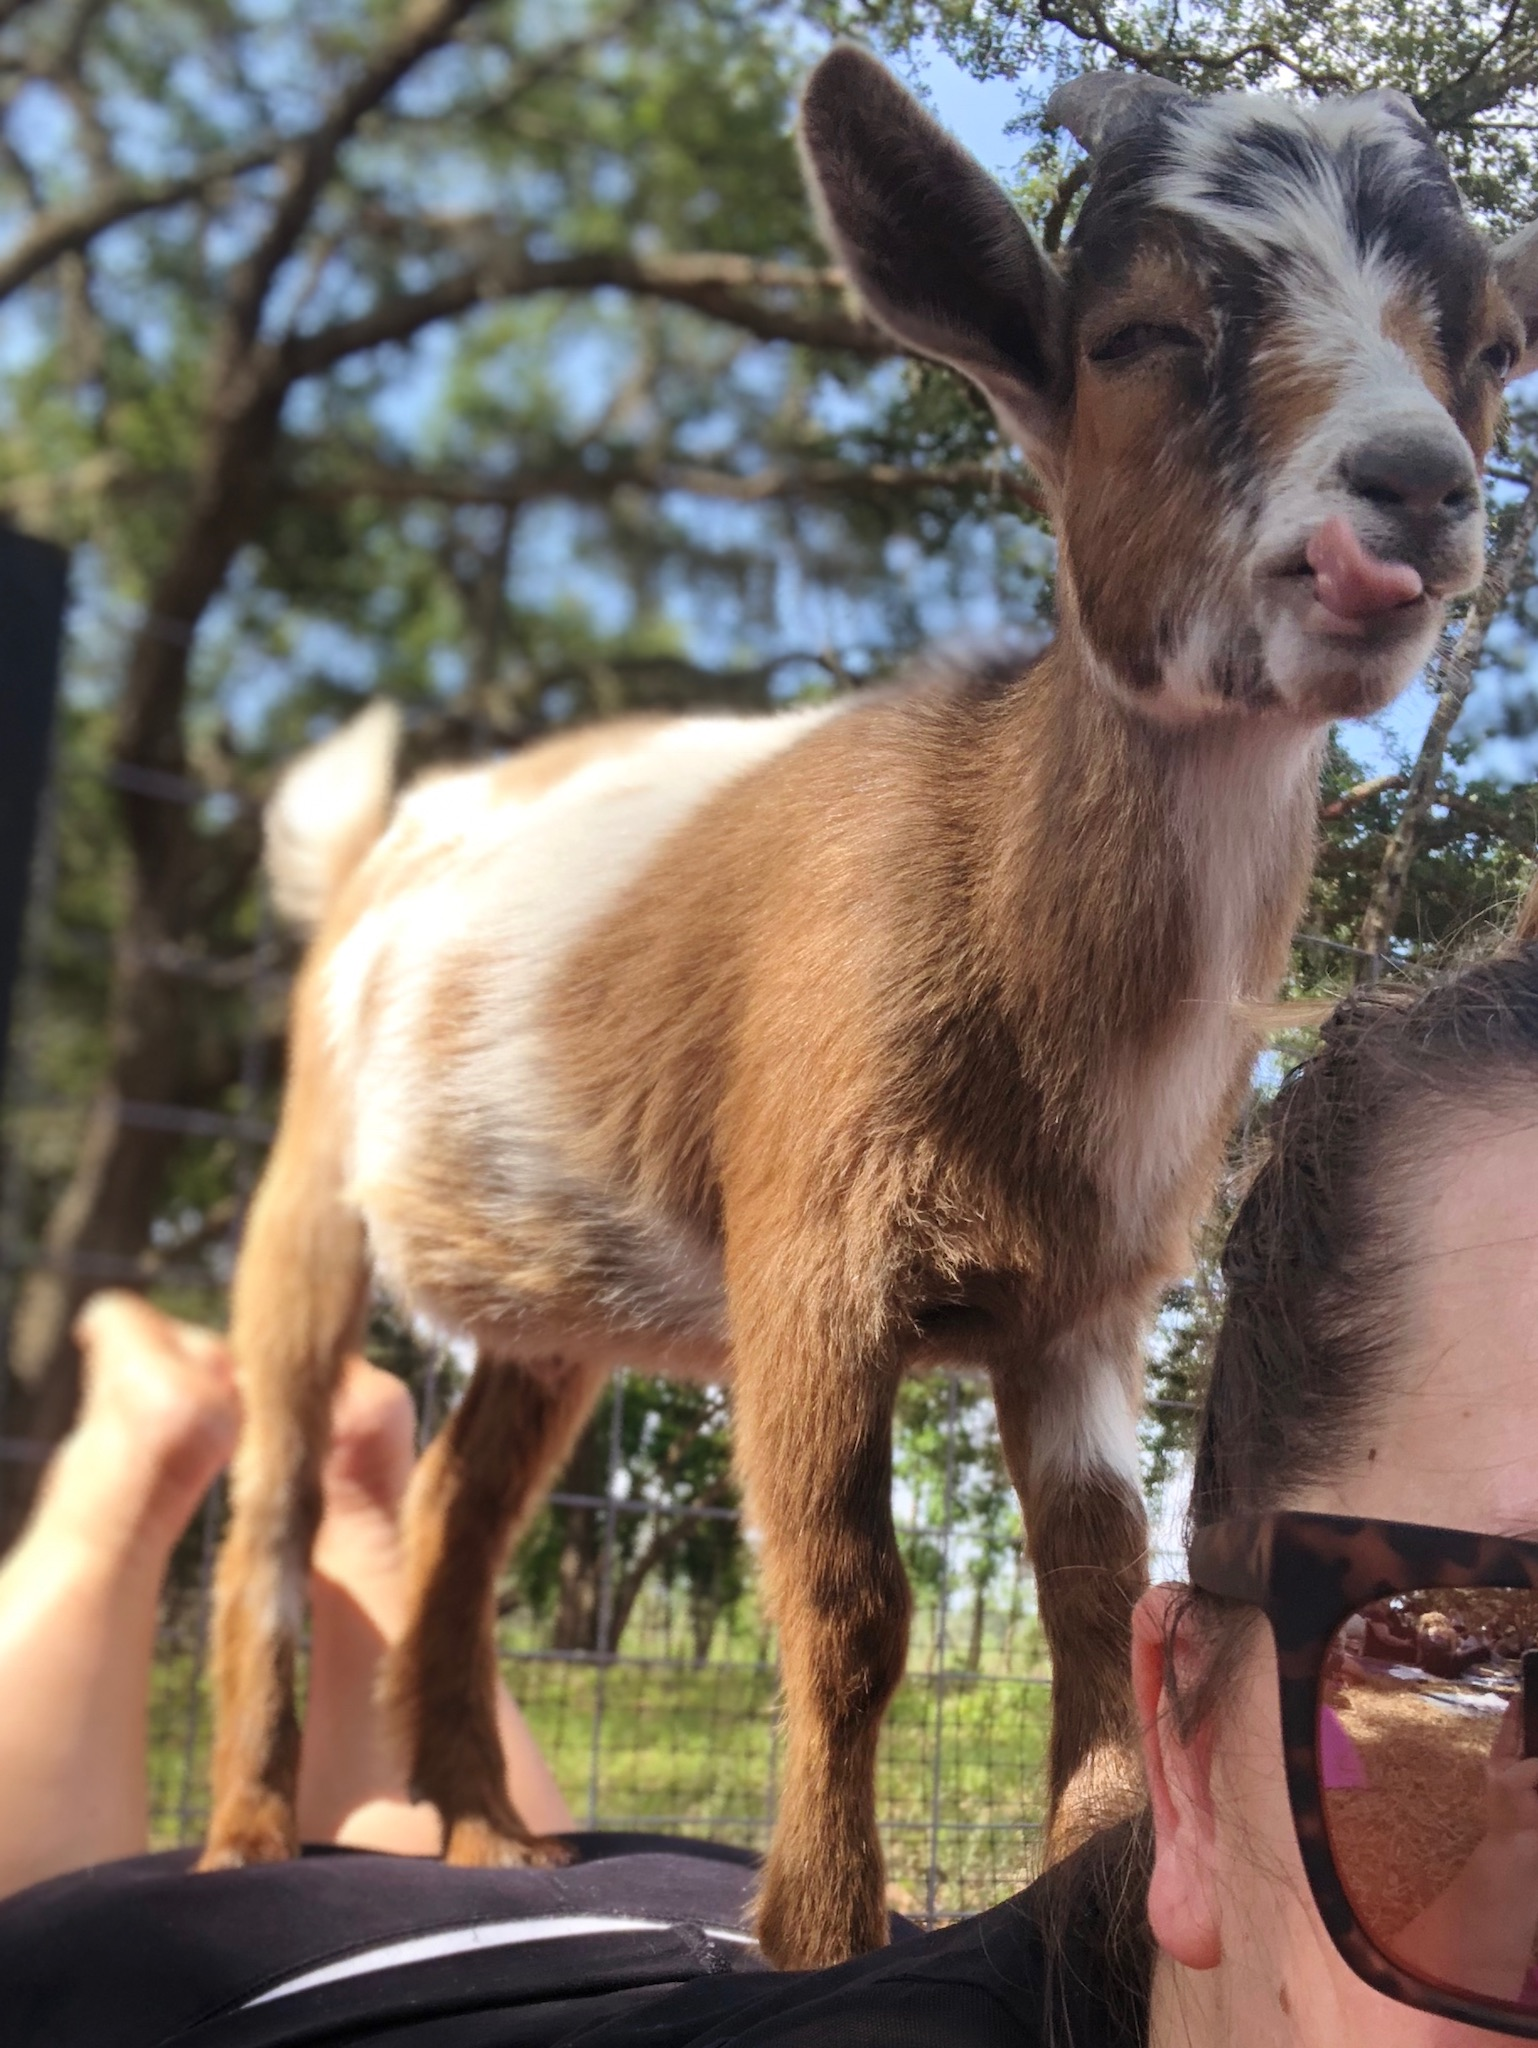 Goat with it's tongue out on a woman's back